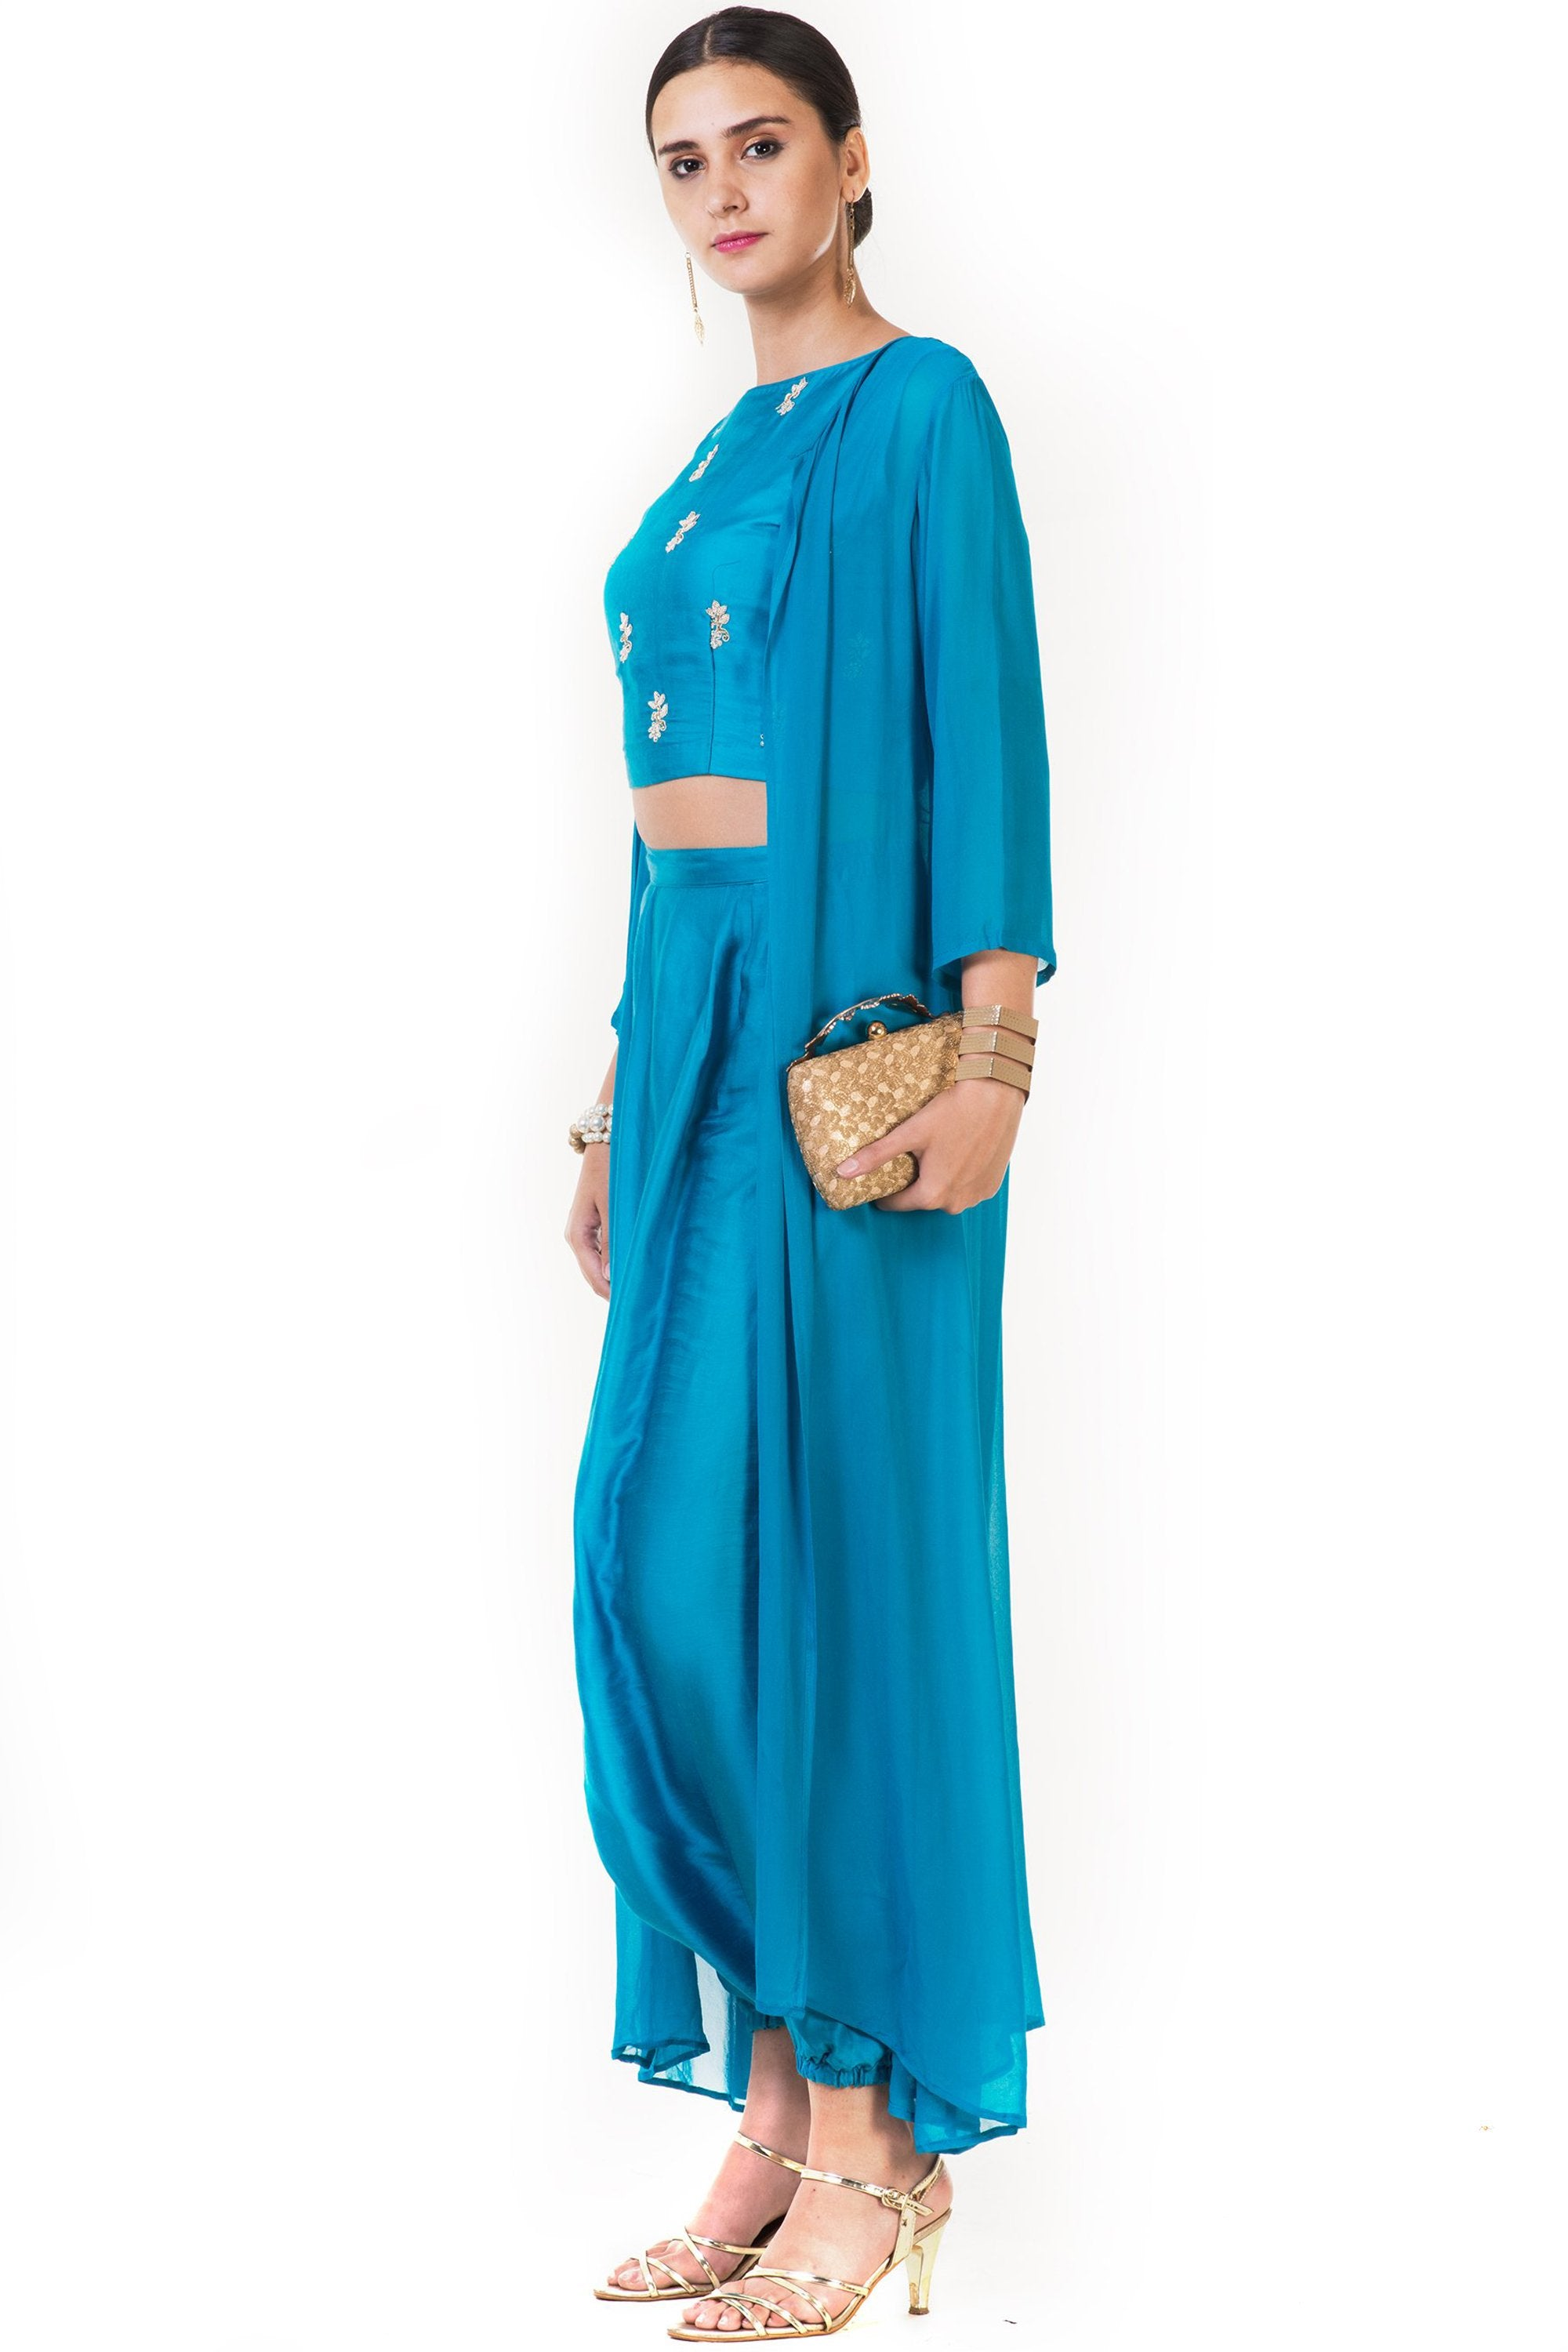 Blue Hand Embroidered Indo-western Dhoti & Crop Top Set with Cape SIDE